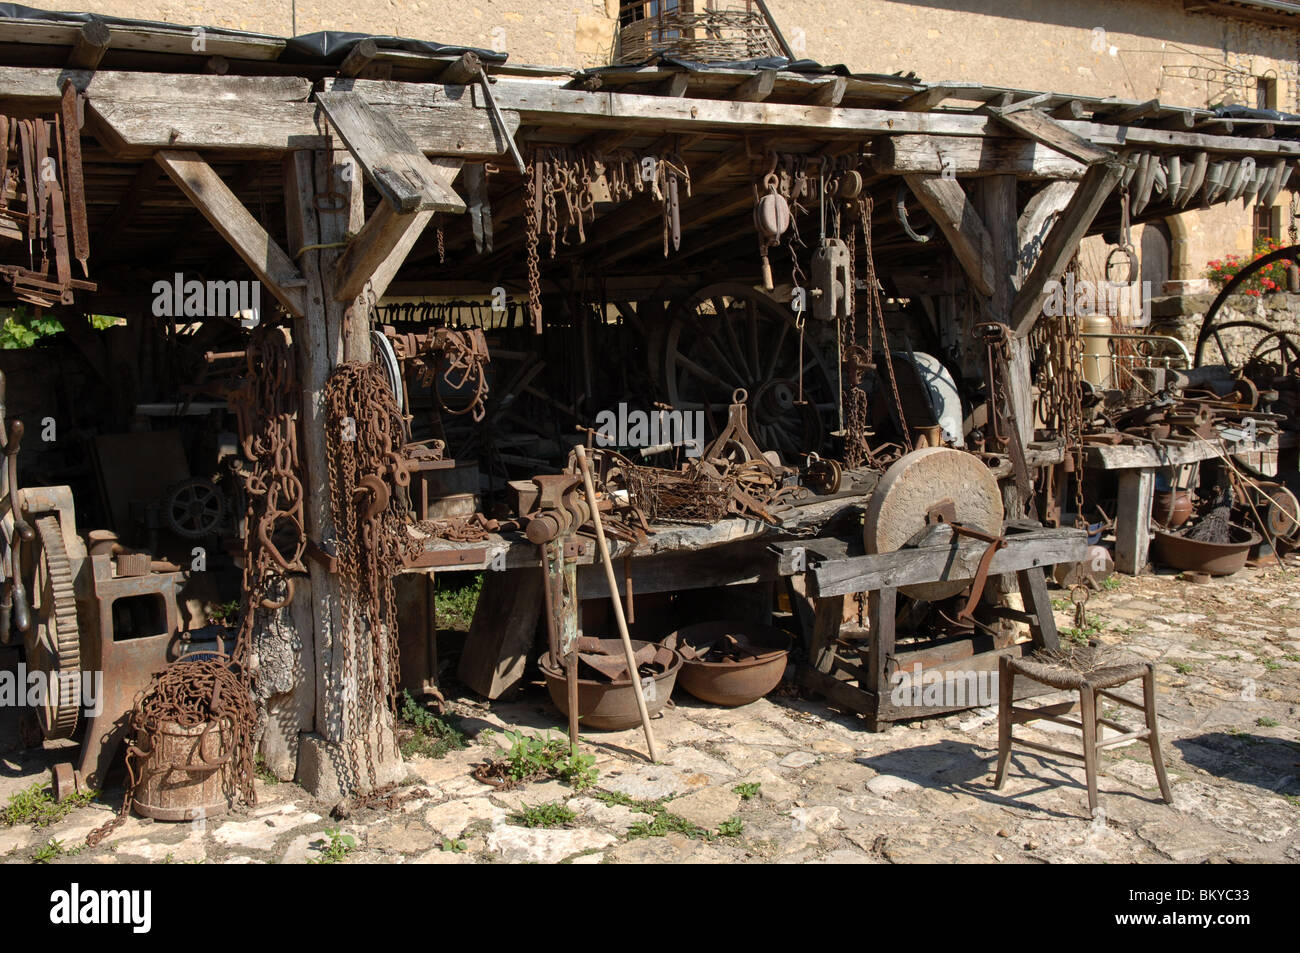 Old implements and machinery in rural France - Stock Image